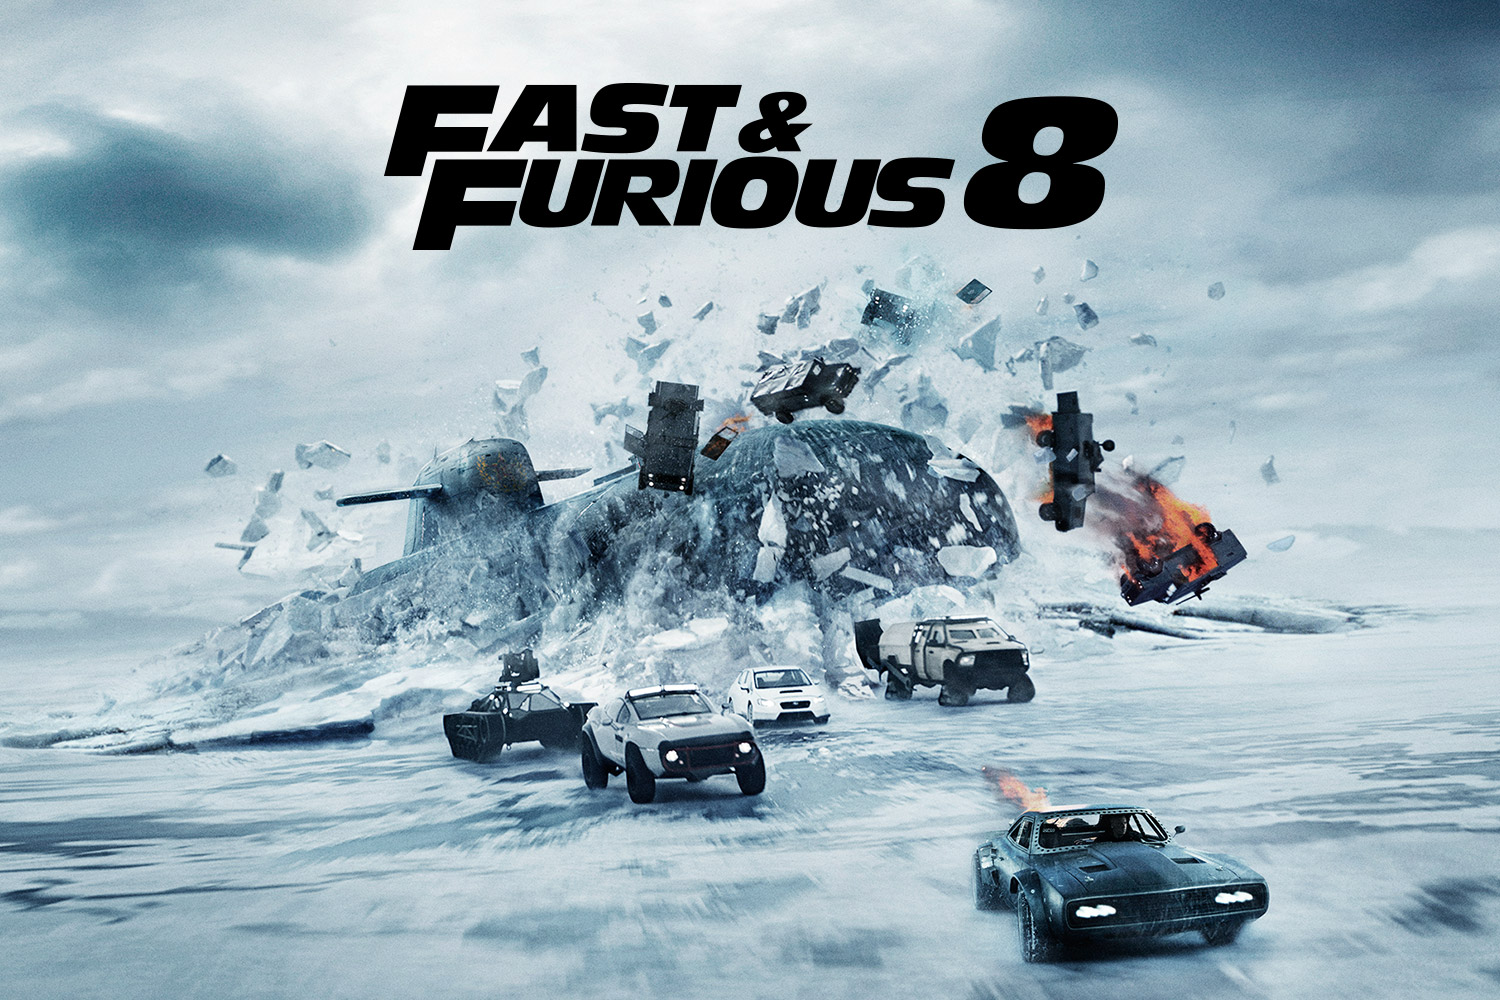 Fast and Furious 8 Promotional Image (C) Universal Pictures